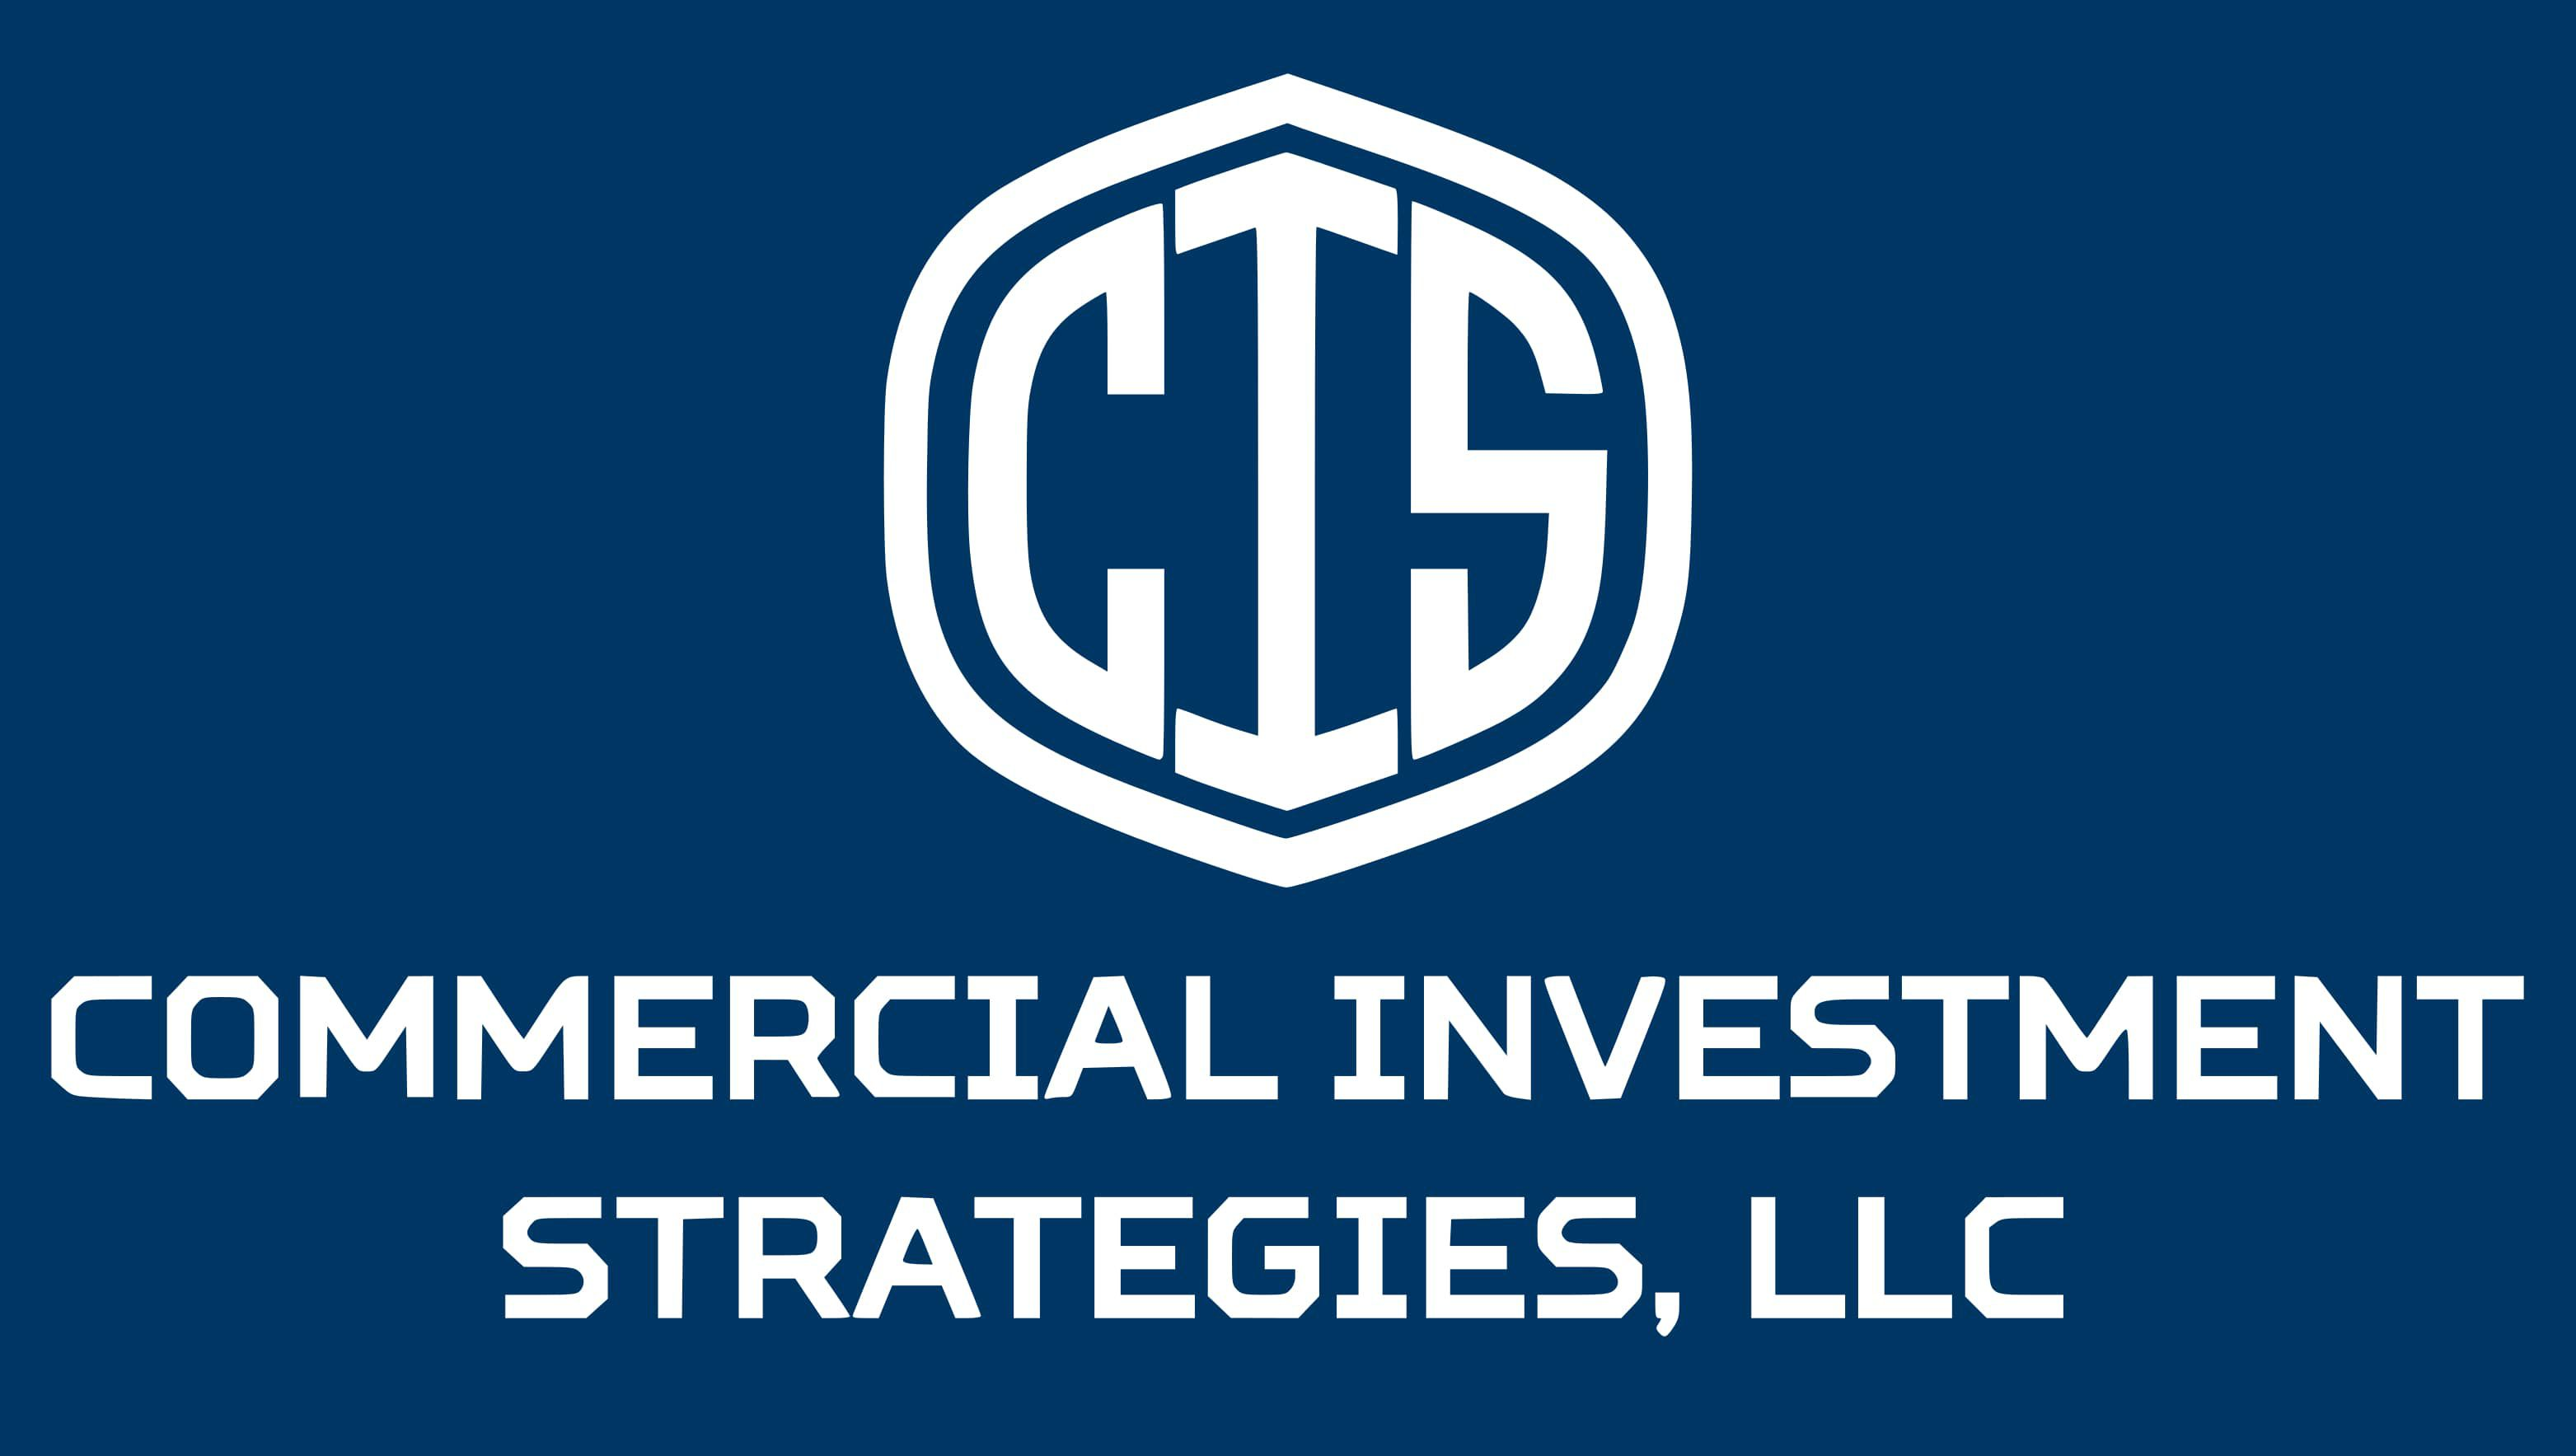 Commercial Investment Strategies